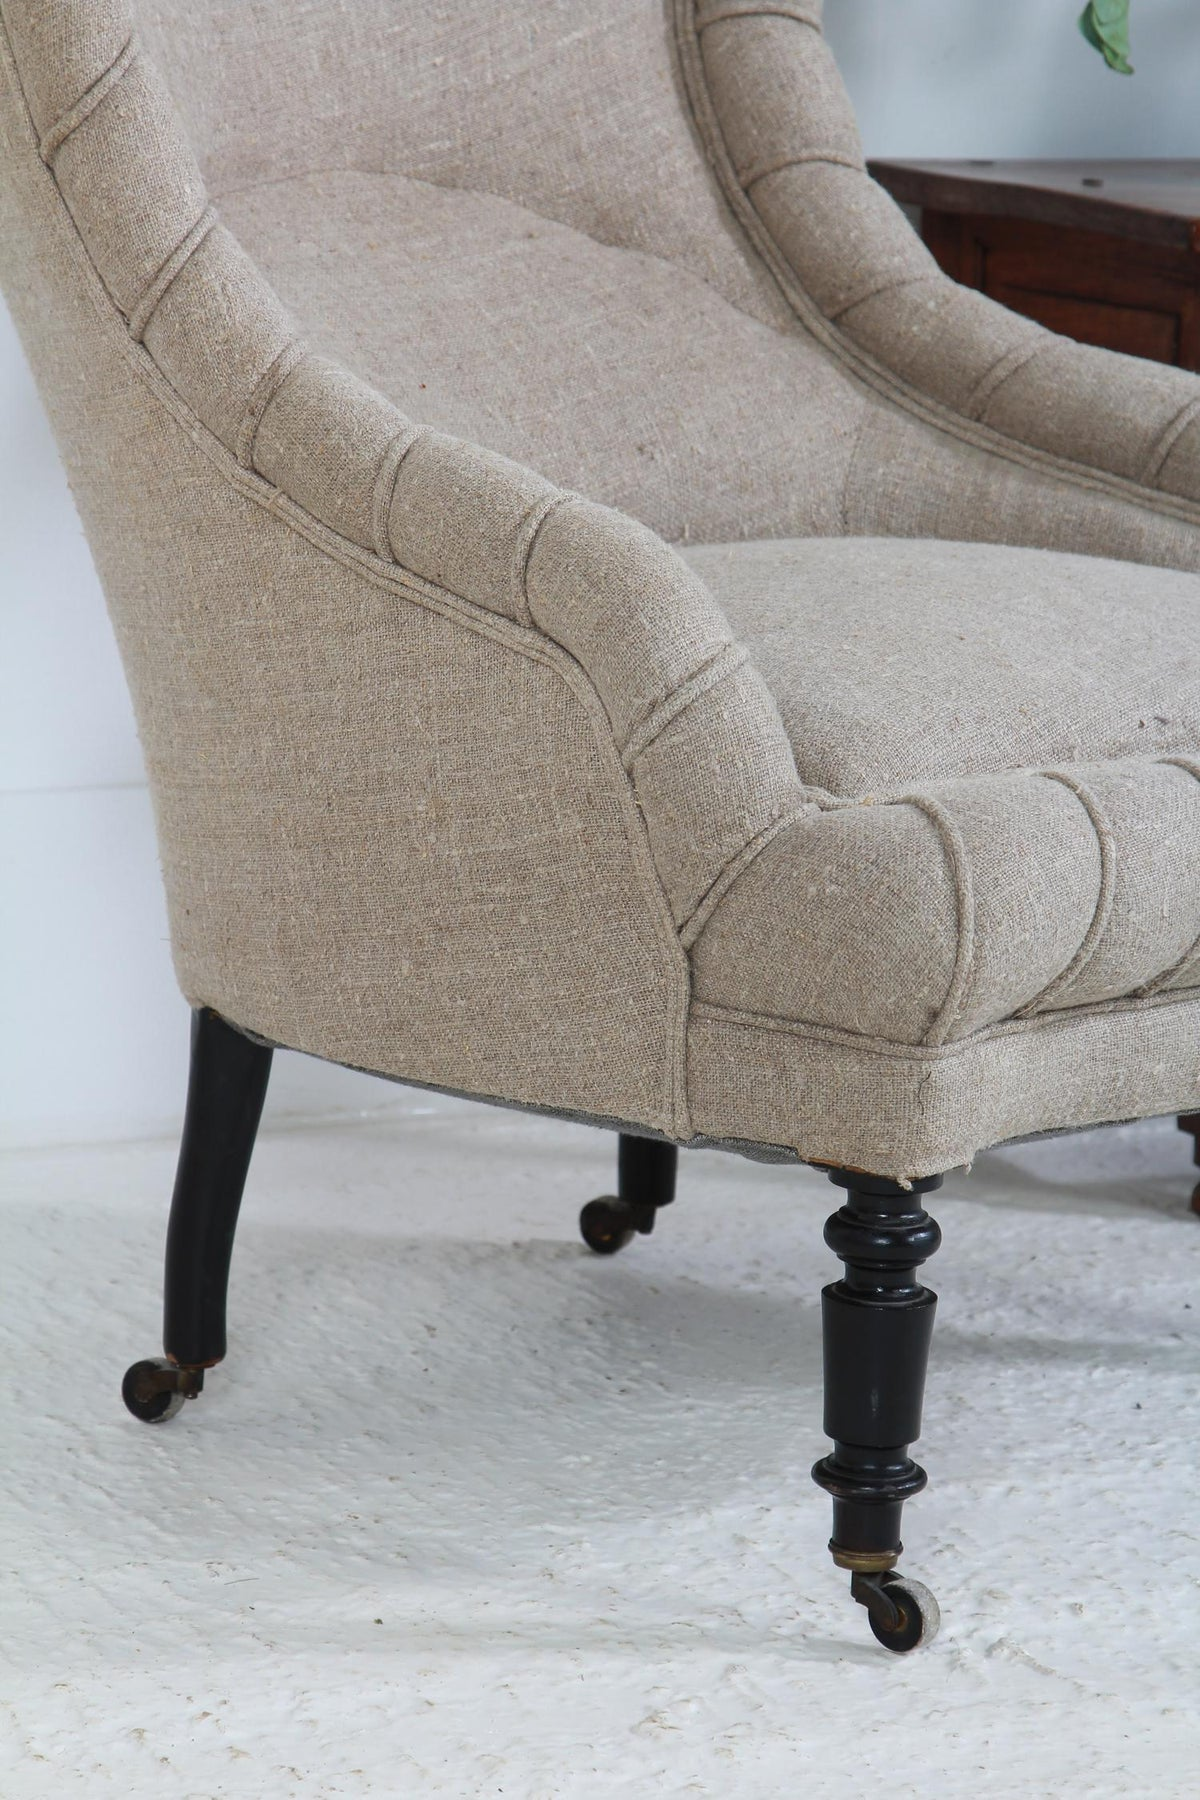 French 19thC Fauteuil Armchair in Vinage Hemp Linen